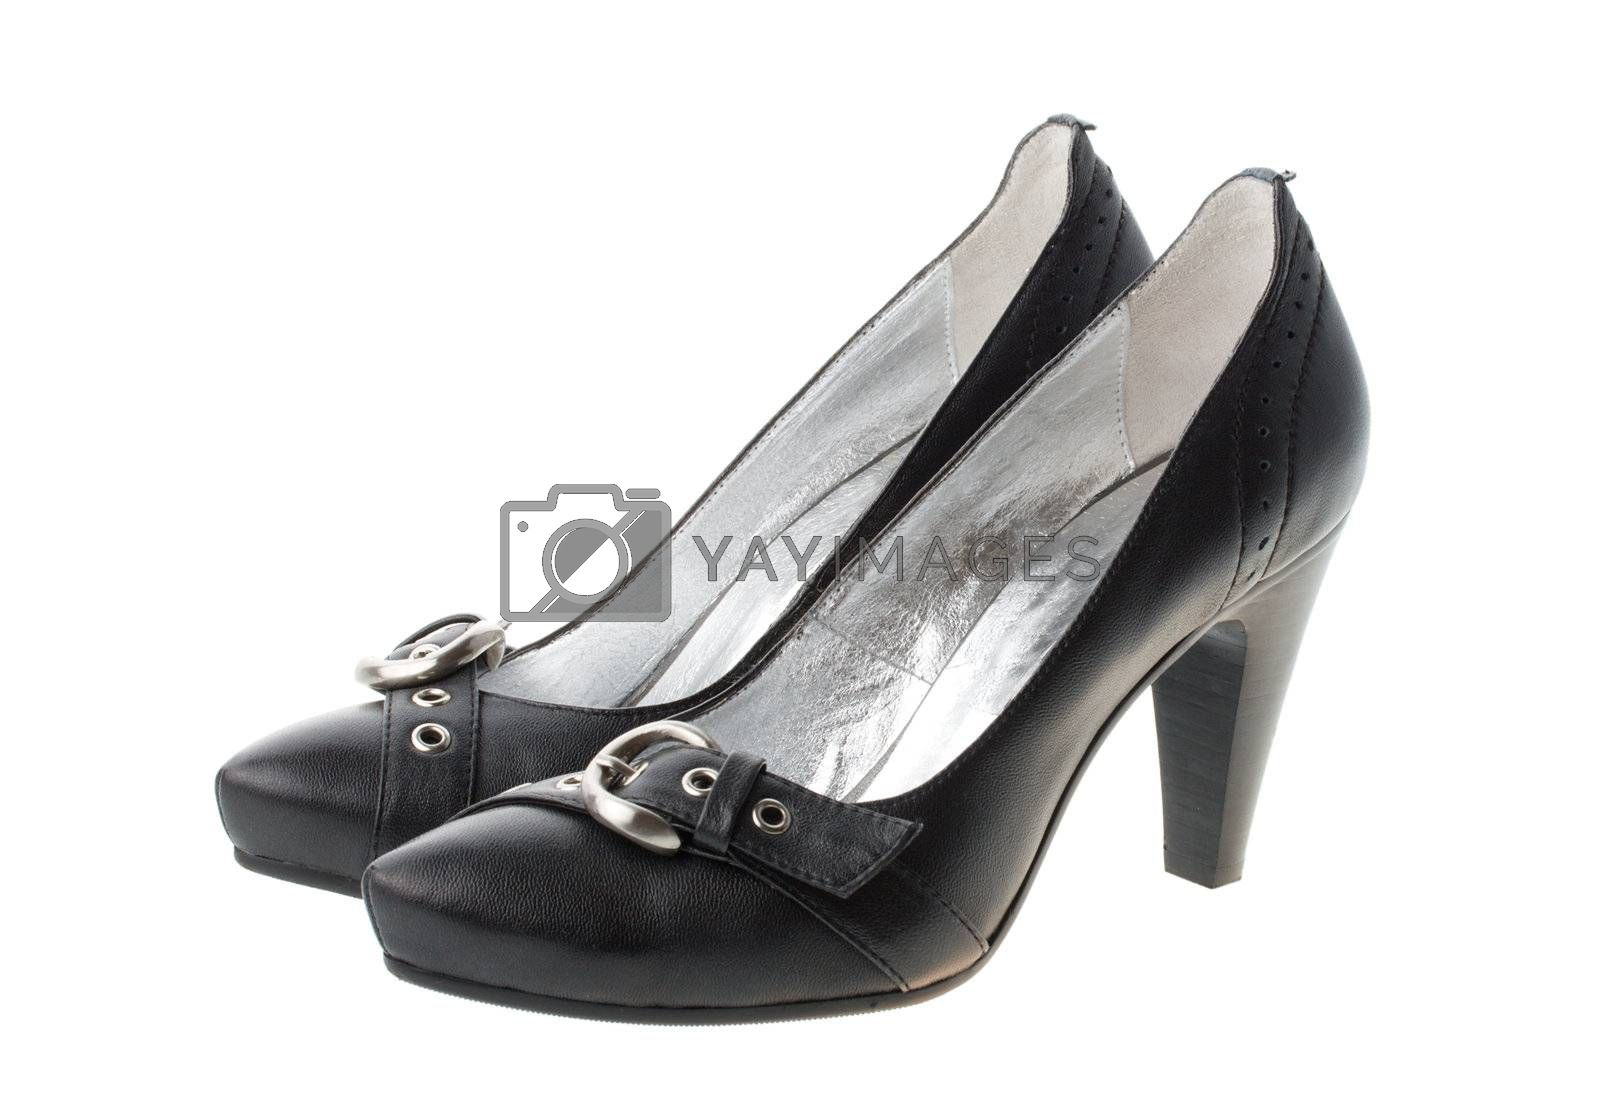 black woman shoes with small straps by Alekcey